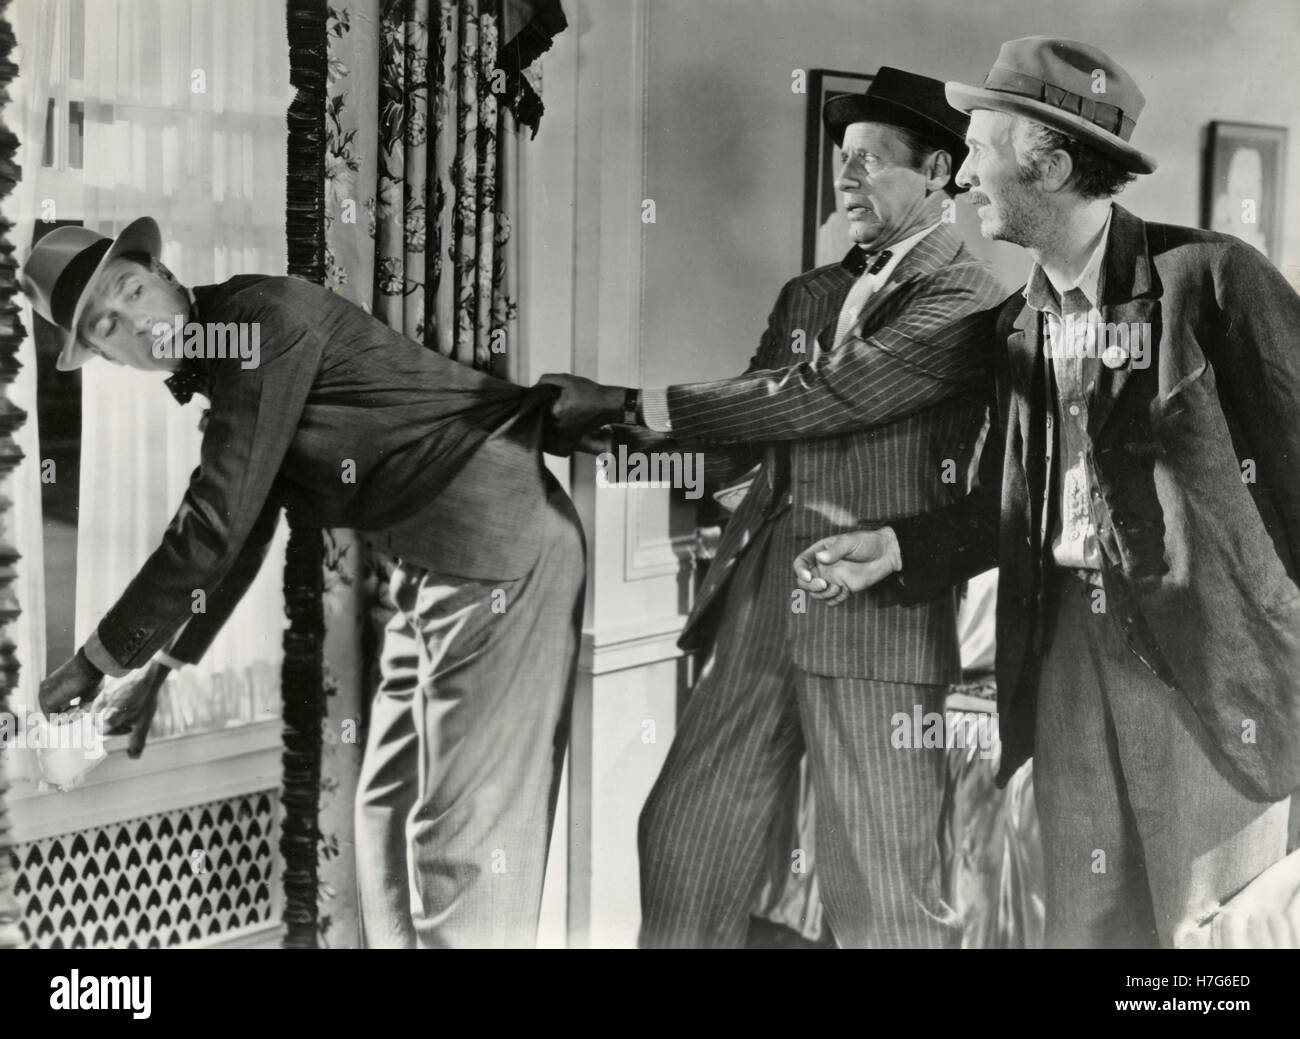 Schauspieler Gary Cooper in dem Film Meet John Doe, USA 1941 Stockbild